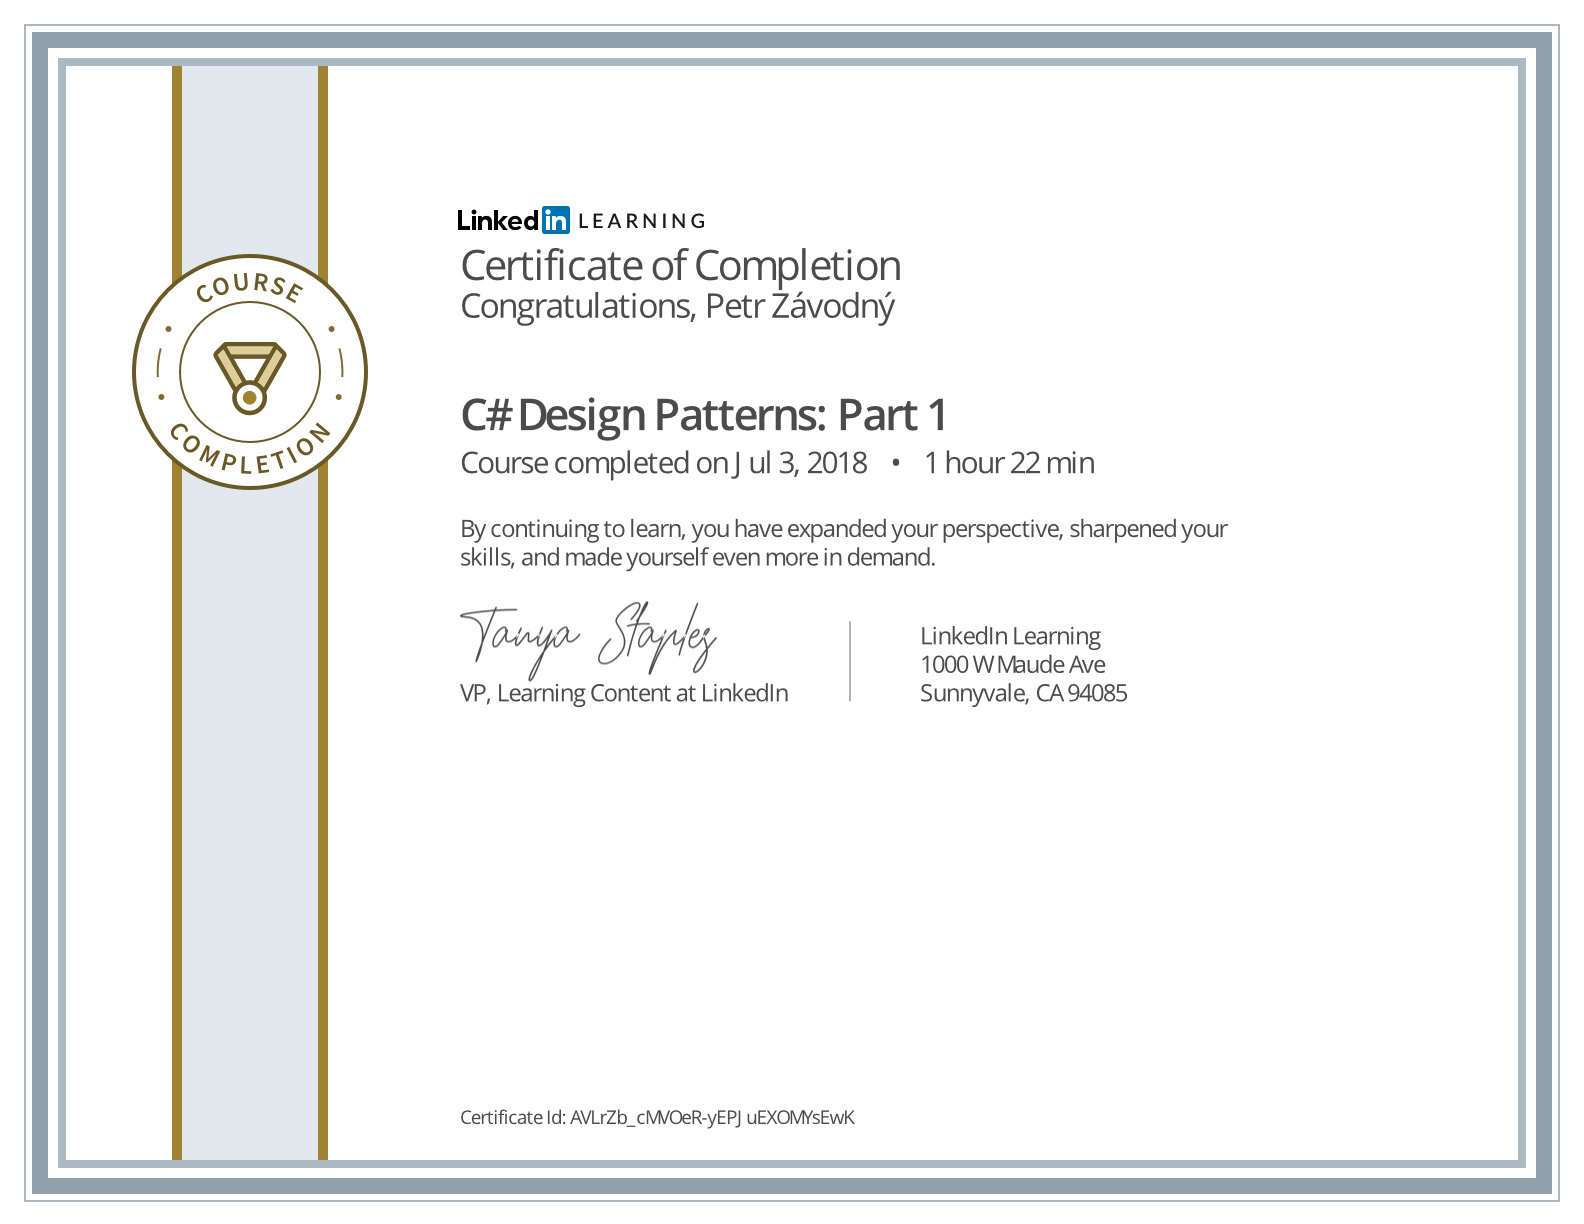 certificate C# Design Patterns